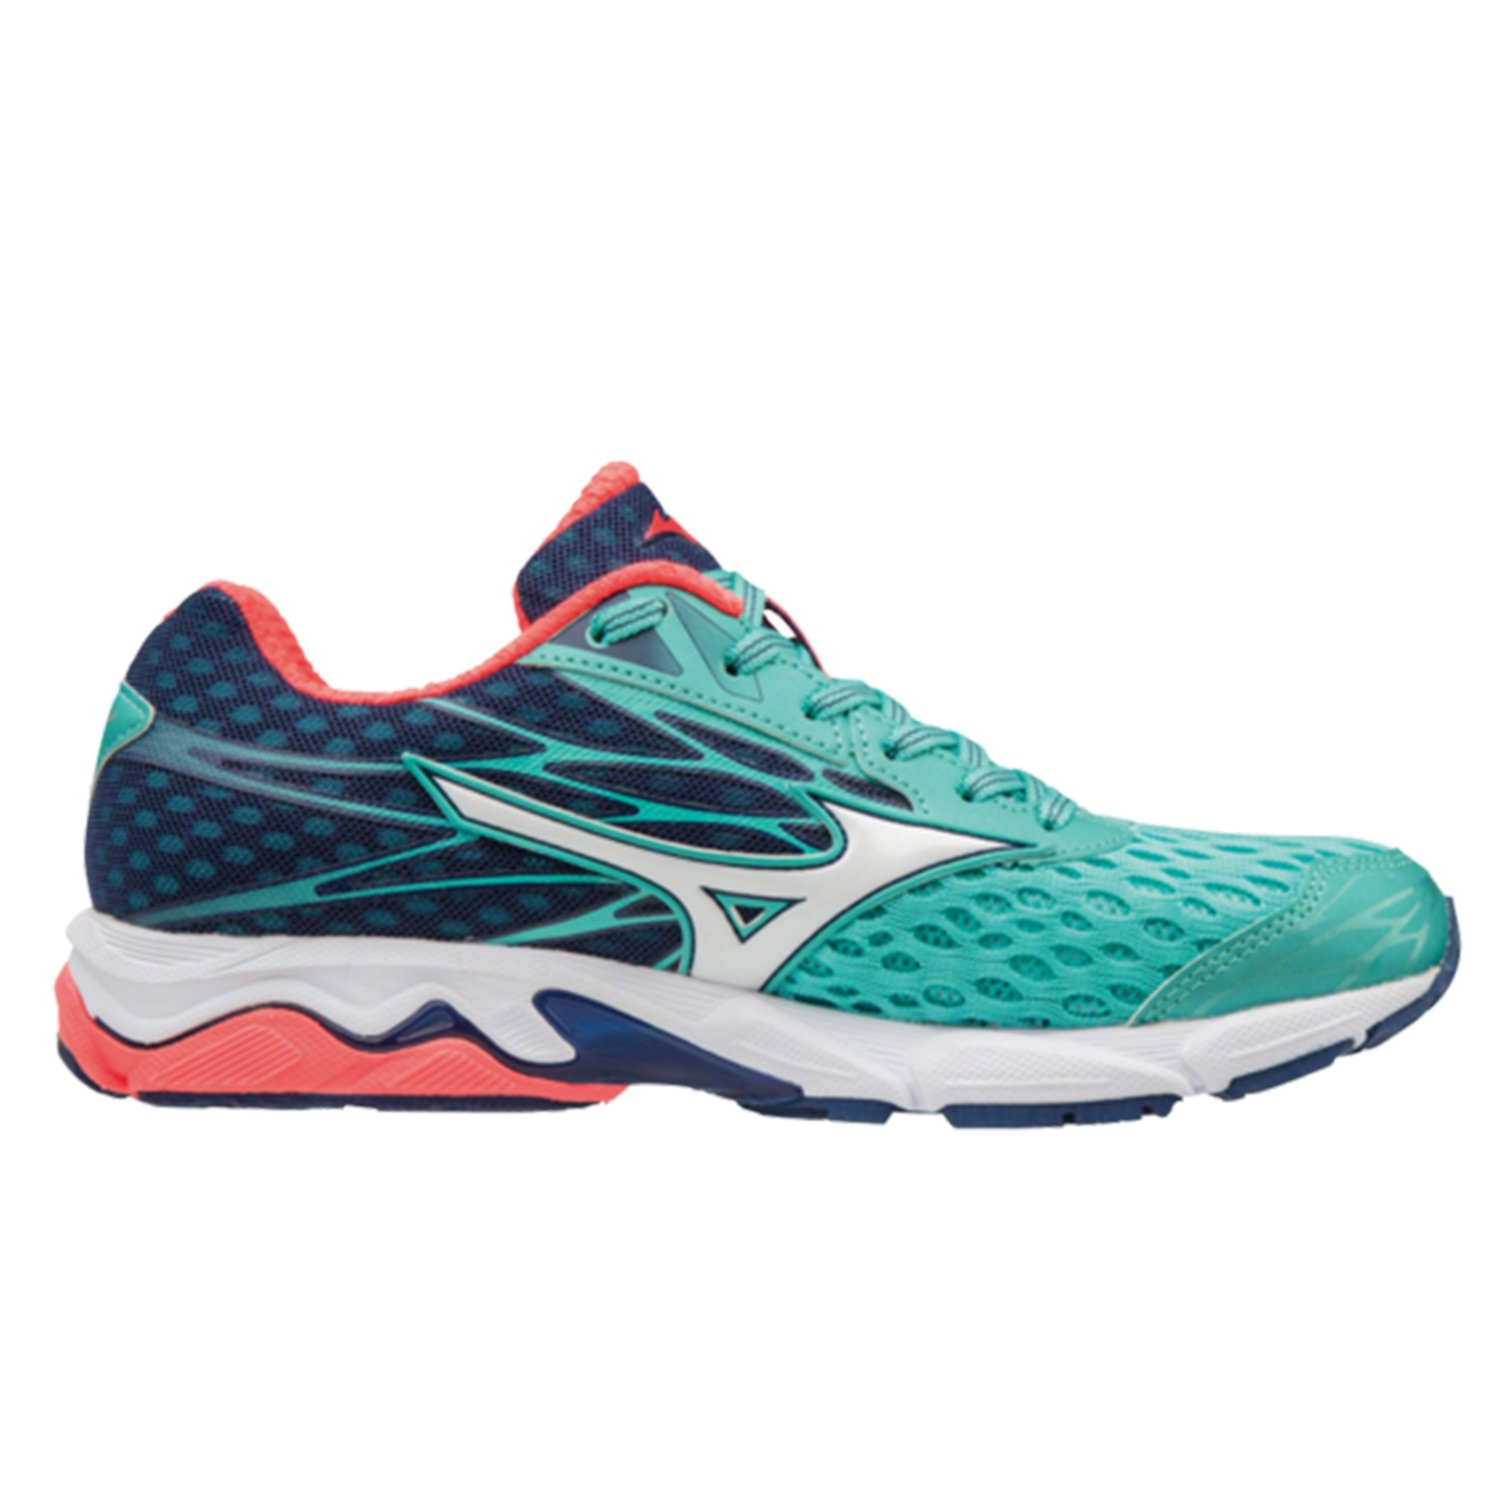 b13b42c224df Mizuno Wave Catalyst 2 Women's Running Shoes| Turquoise/Coral ...